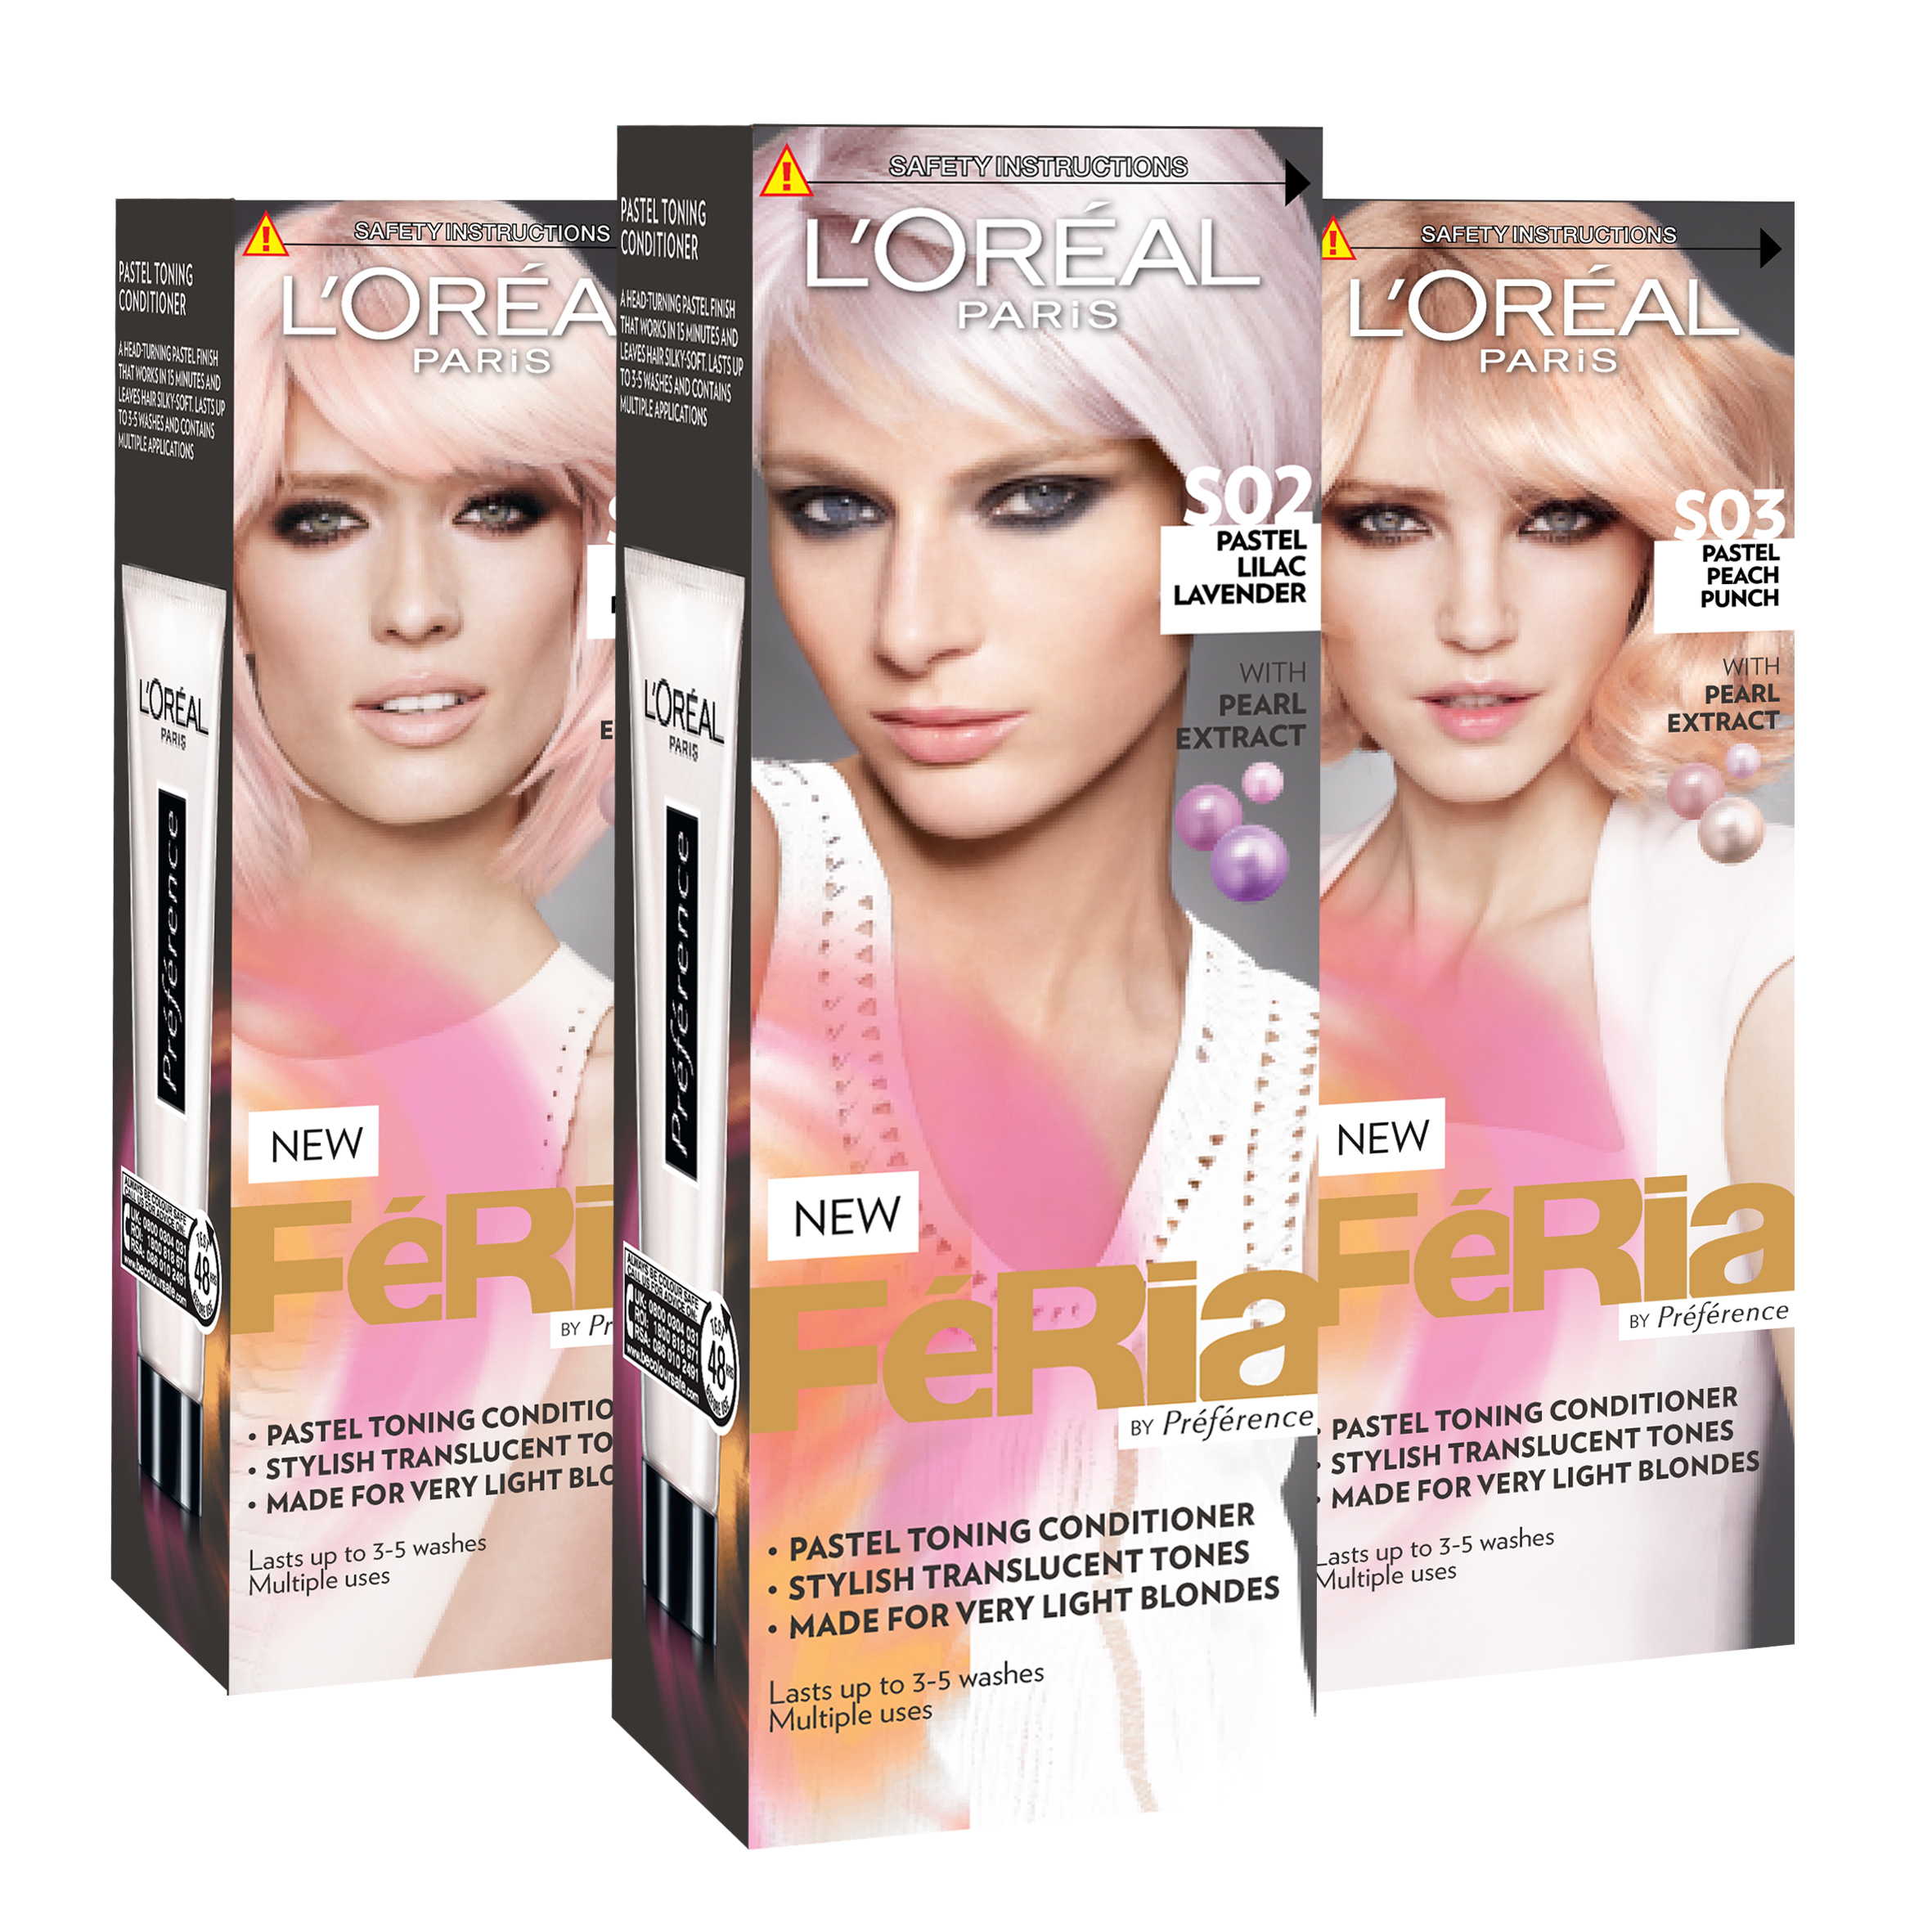 Loreal Fria Pastel Toning Conditioner Beauty Baked